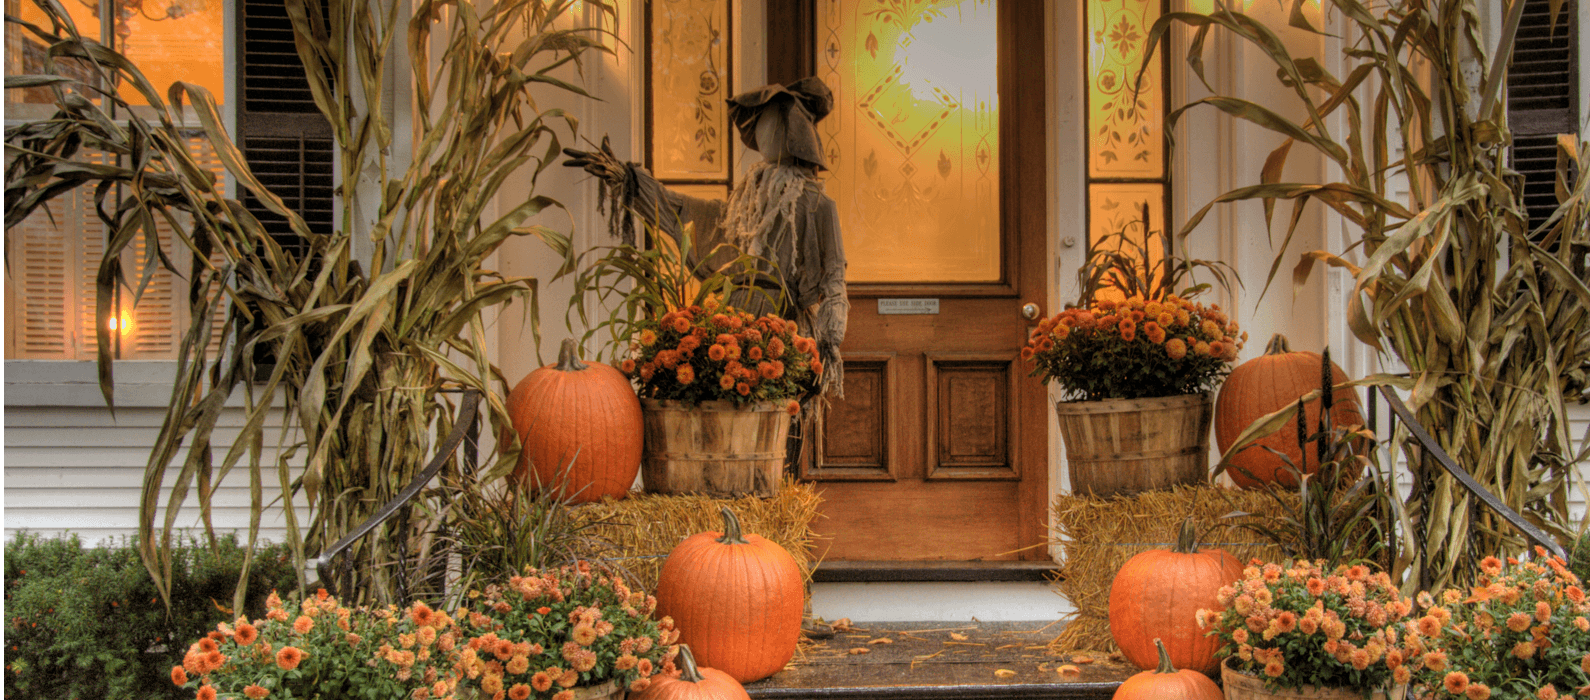 Ideas for Beautiful Fall Decor from Broadview Featured Image